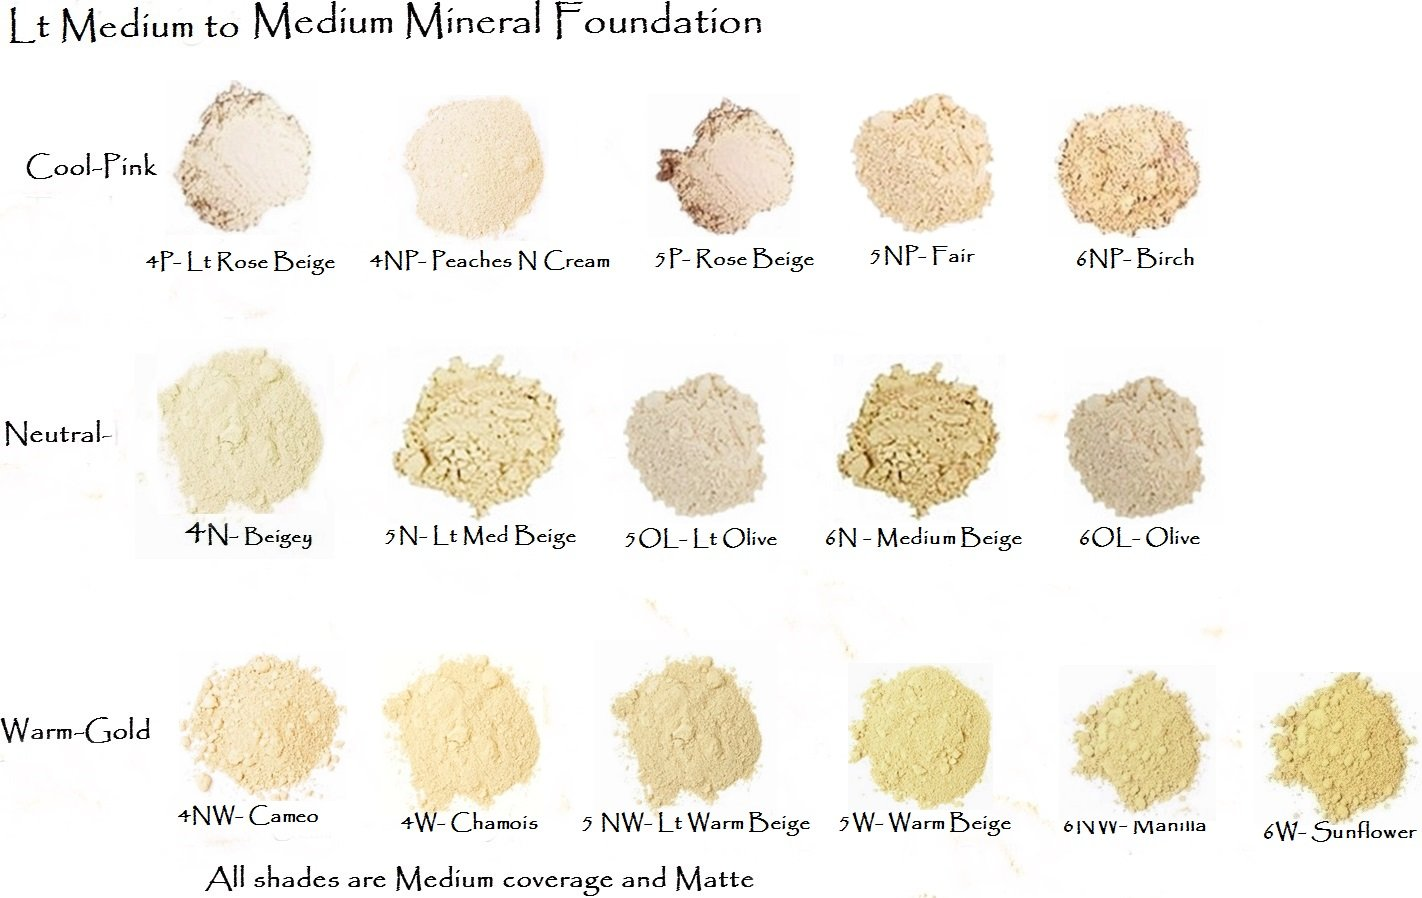 Fair - Light Slightly Pinkish Beige Loose Mineral Foundation - All Natural 20gm Jar